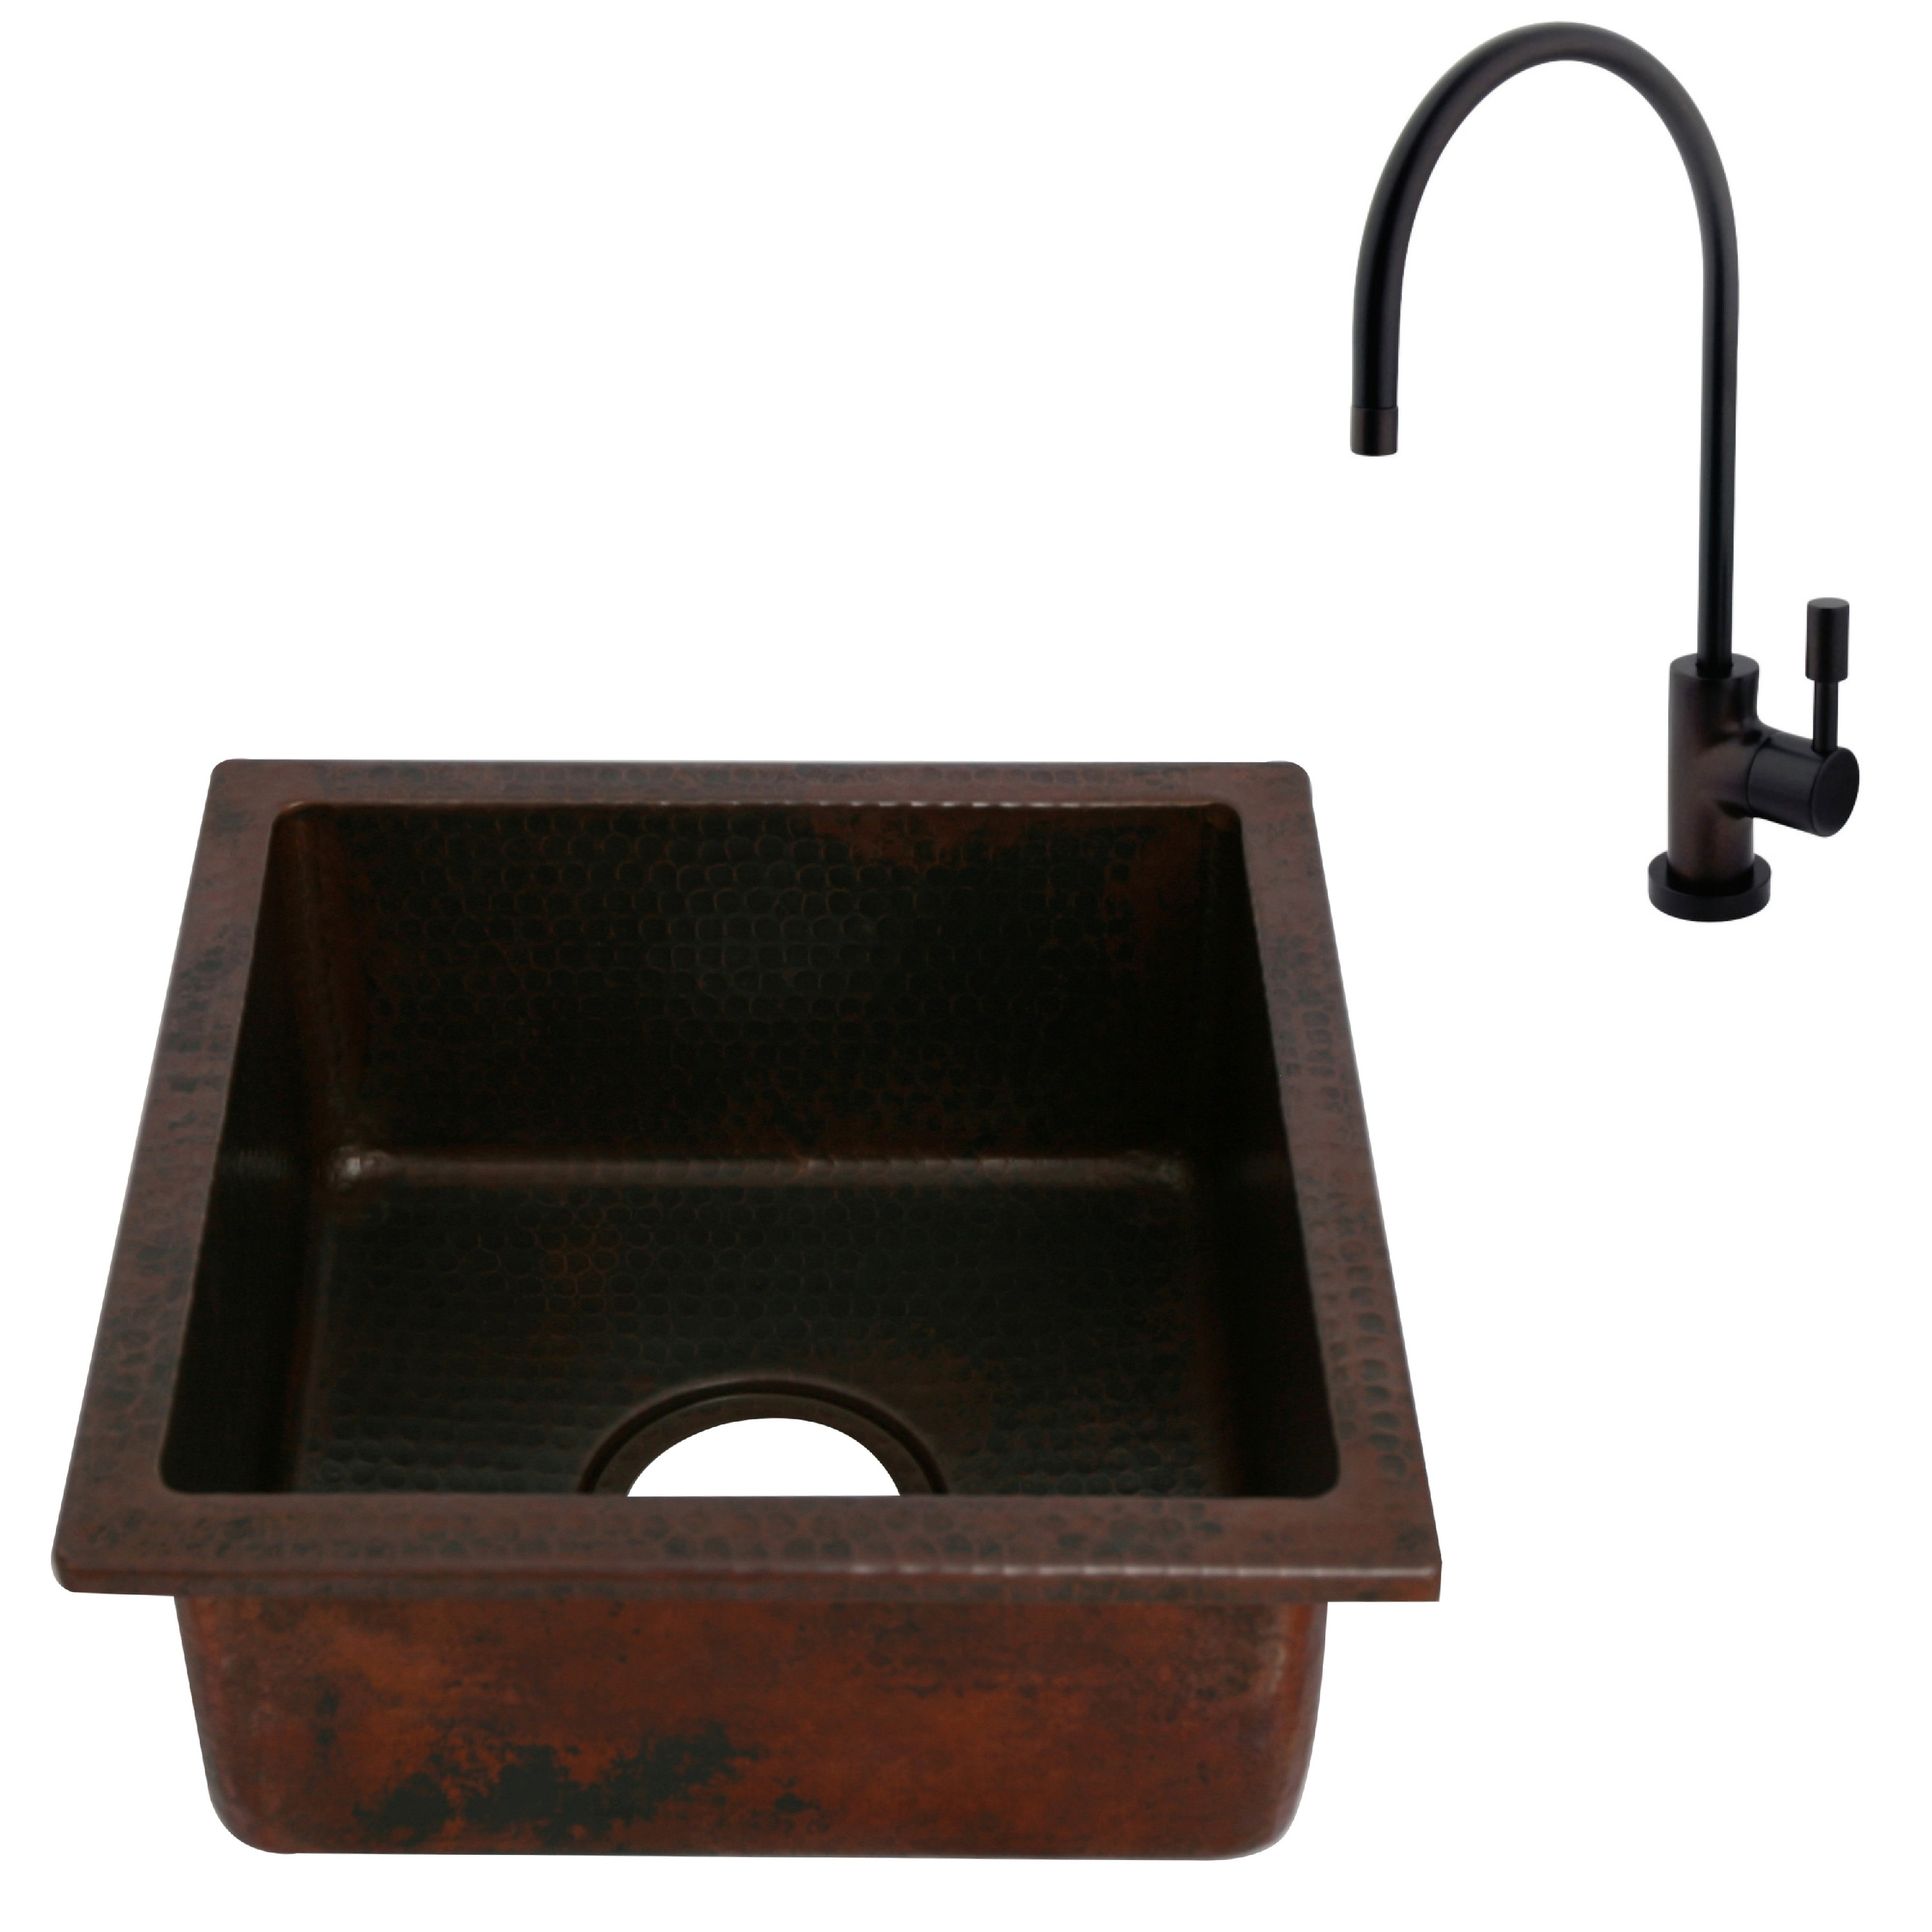 Unikwities 14X14X6.5 inch Square Drop In Copper Sink with Bar Faucet ...